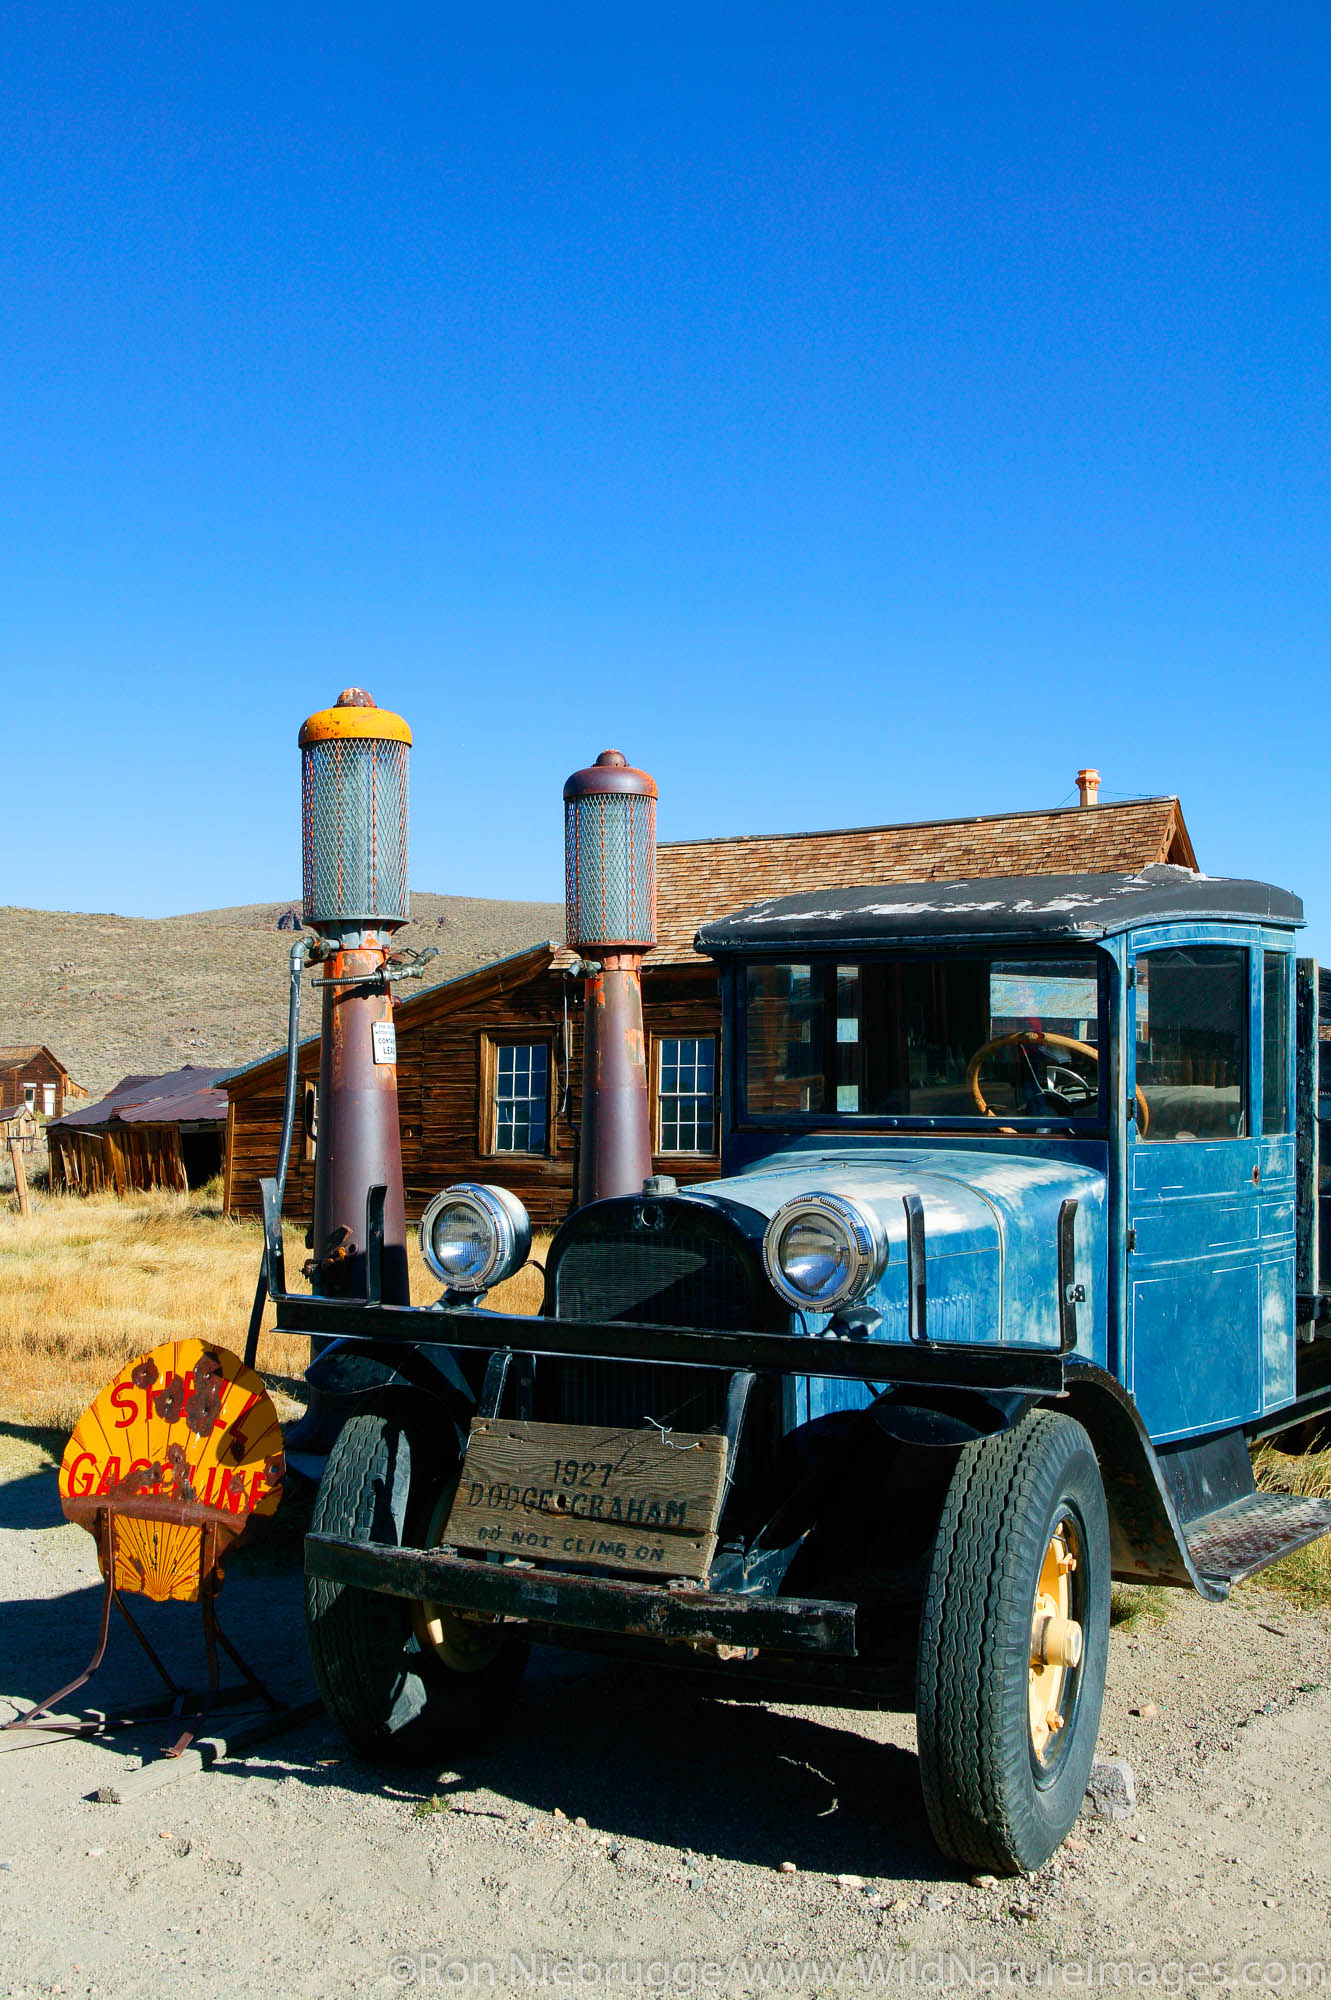 An old service station at the Boone Store and Warehouse in the historic ghost town of Bodie.  Bodie was once bustling gold mining...